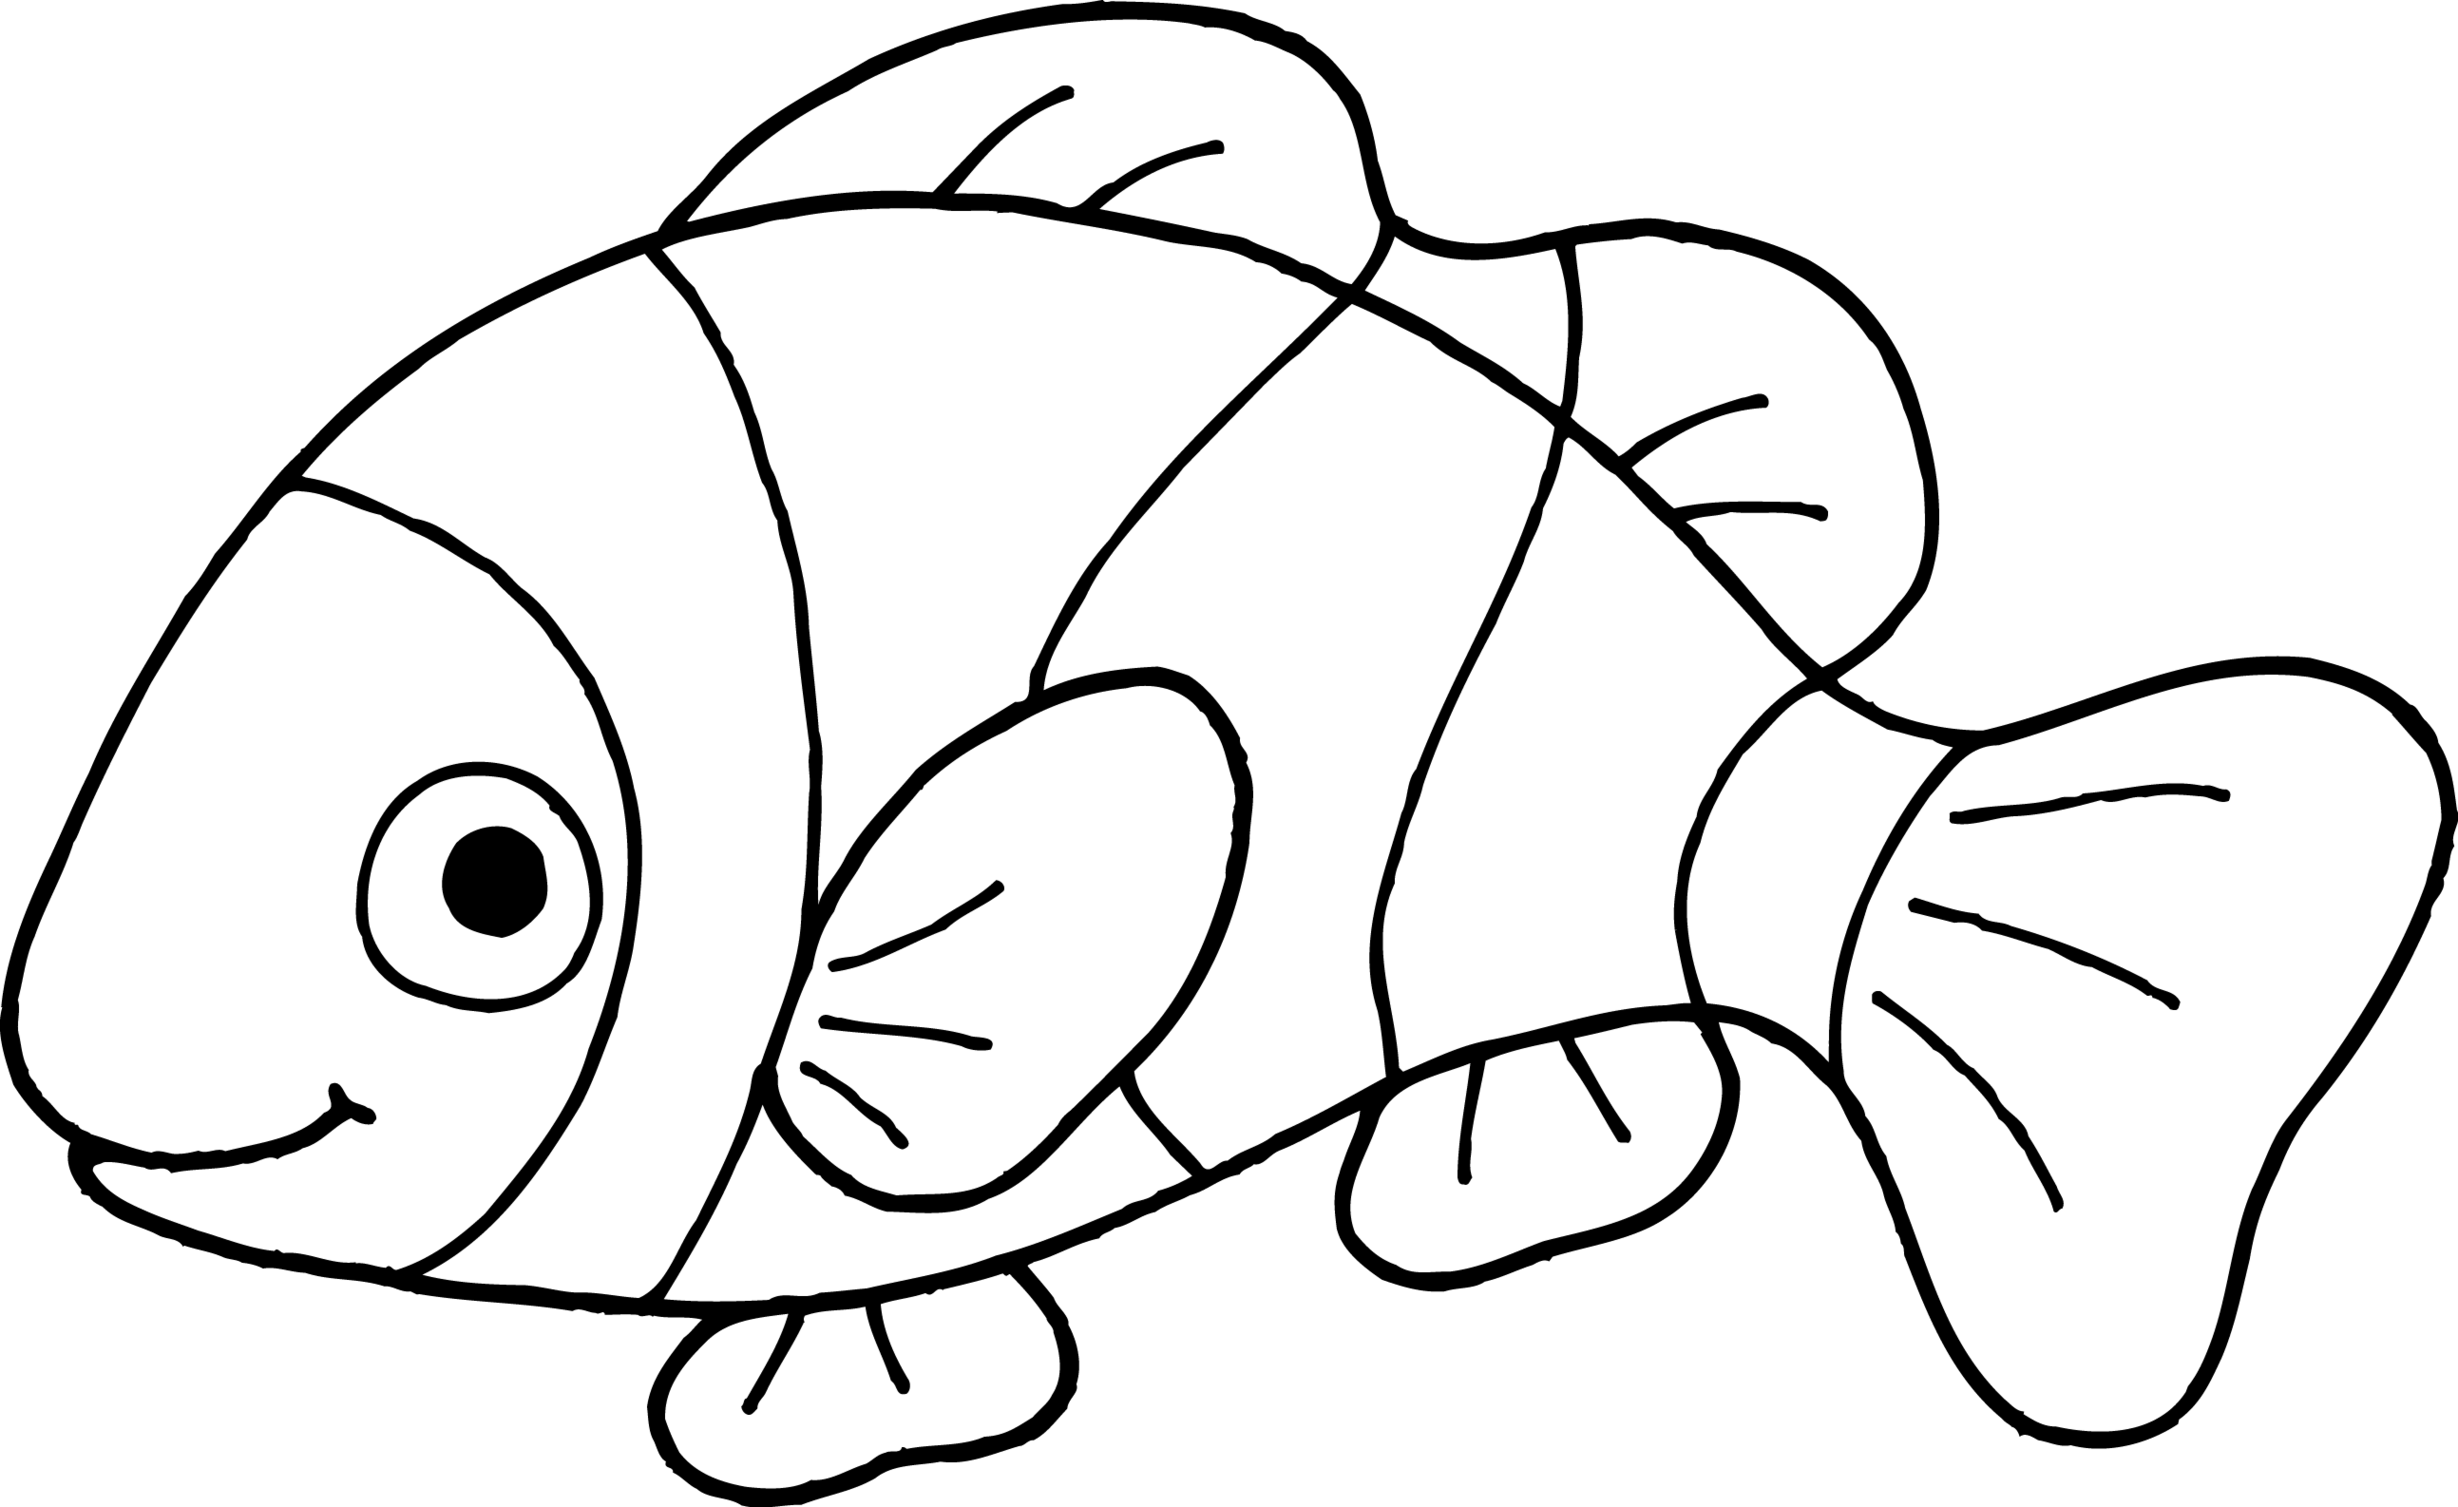 Cartoon fish clipart black and white jpg library Fish Clipart Black And White | Letters Format jpg library